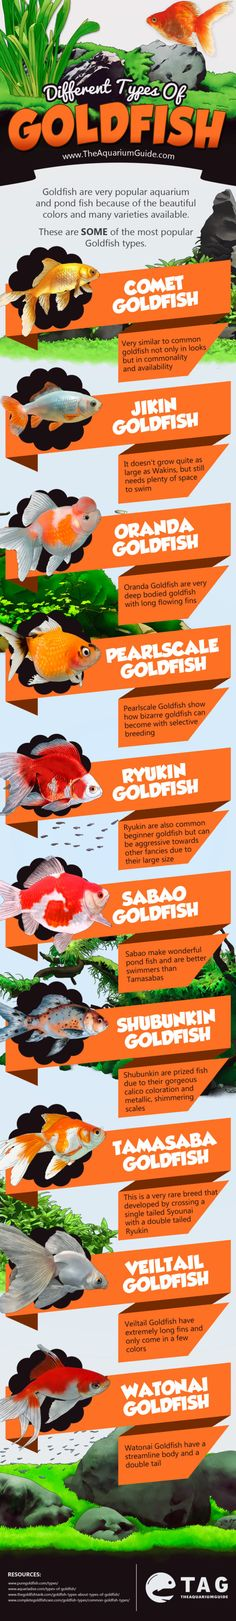 Here's an infographic that I've created for my Goldfish series. If you have not check my Goldfish Series, below are all the post for the series: Brief Goldfish Care Guide Types of Goldfish Proper Goldfish Feeding Breeding Goldfish Common Goldfish Diseases Hope this goldfish series are useful for all goldfish lovers. And as an added …